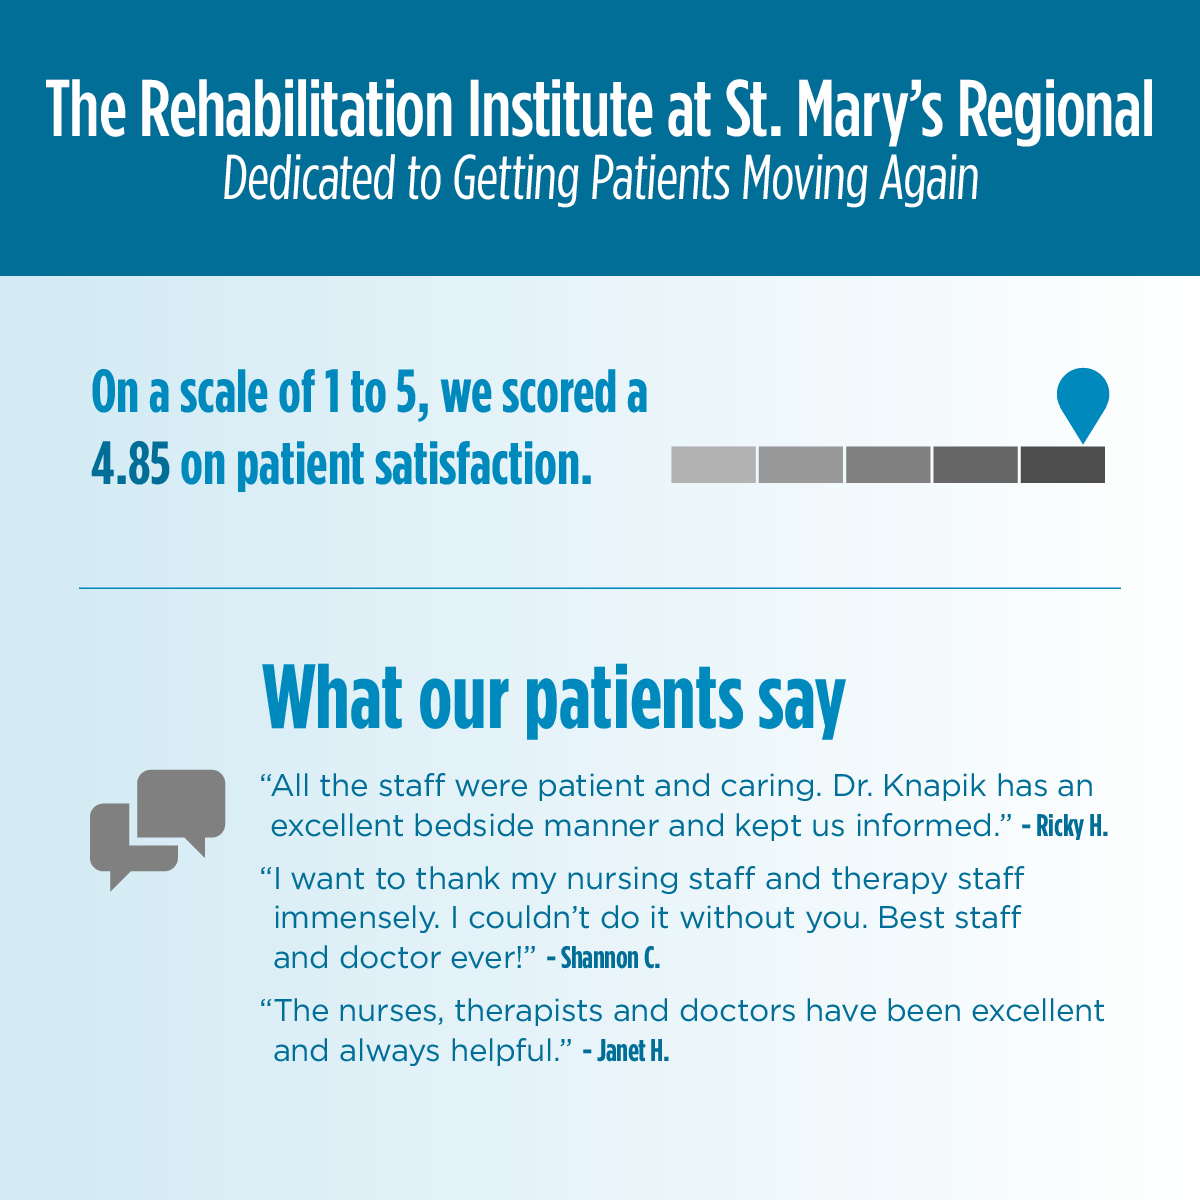 On a scale of one to five, the Rehabilitation Institute at St. Mary's Regional scored 4.85 on patient satisfaction. Here is what a few of our patients have said about our services: All the staff were patient and caring. Dr. Knapik has an excellent bedside manner and kept us informed. I want to thank my nursing staff and therapy staff immensely. I couldn't do it without you. Best staff and doctor ever. The nurses, therapists and doctors have been excellent and always helpful.